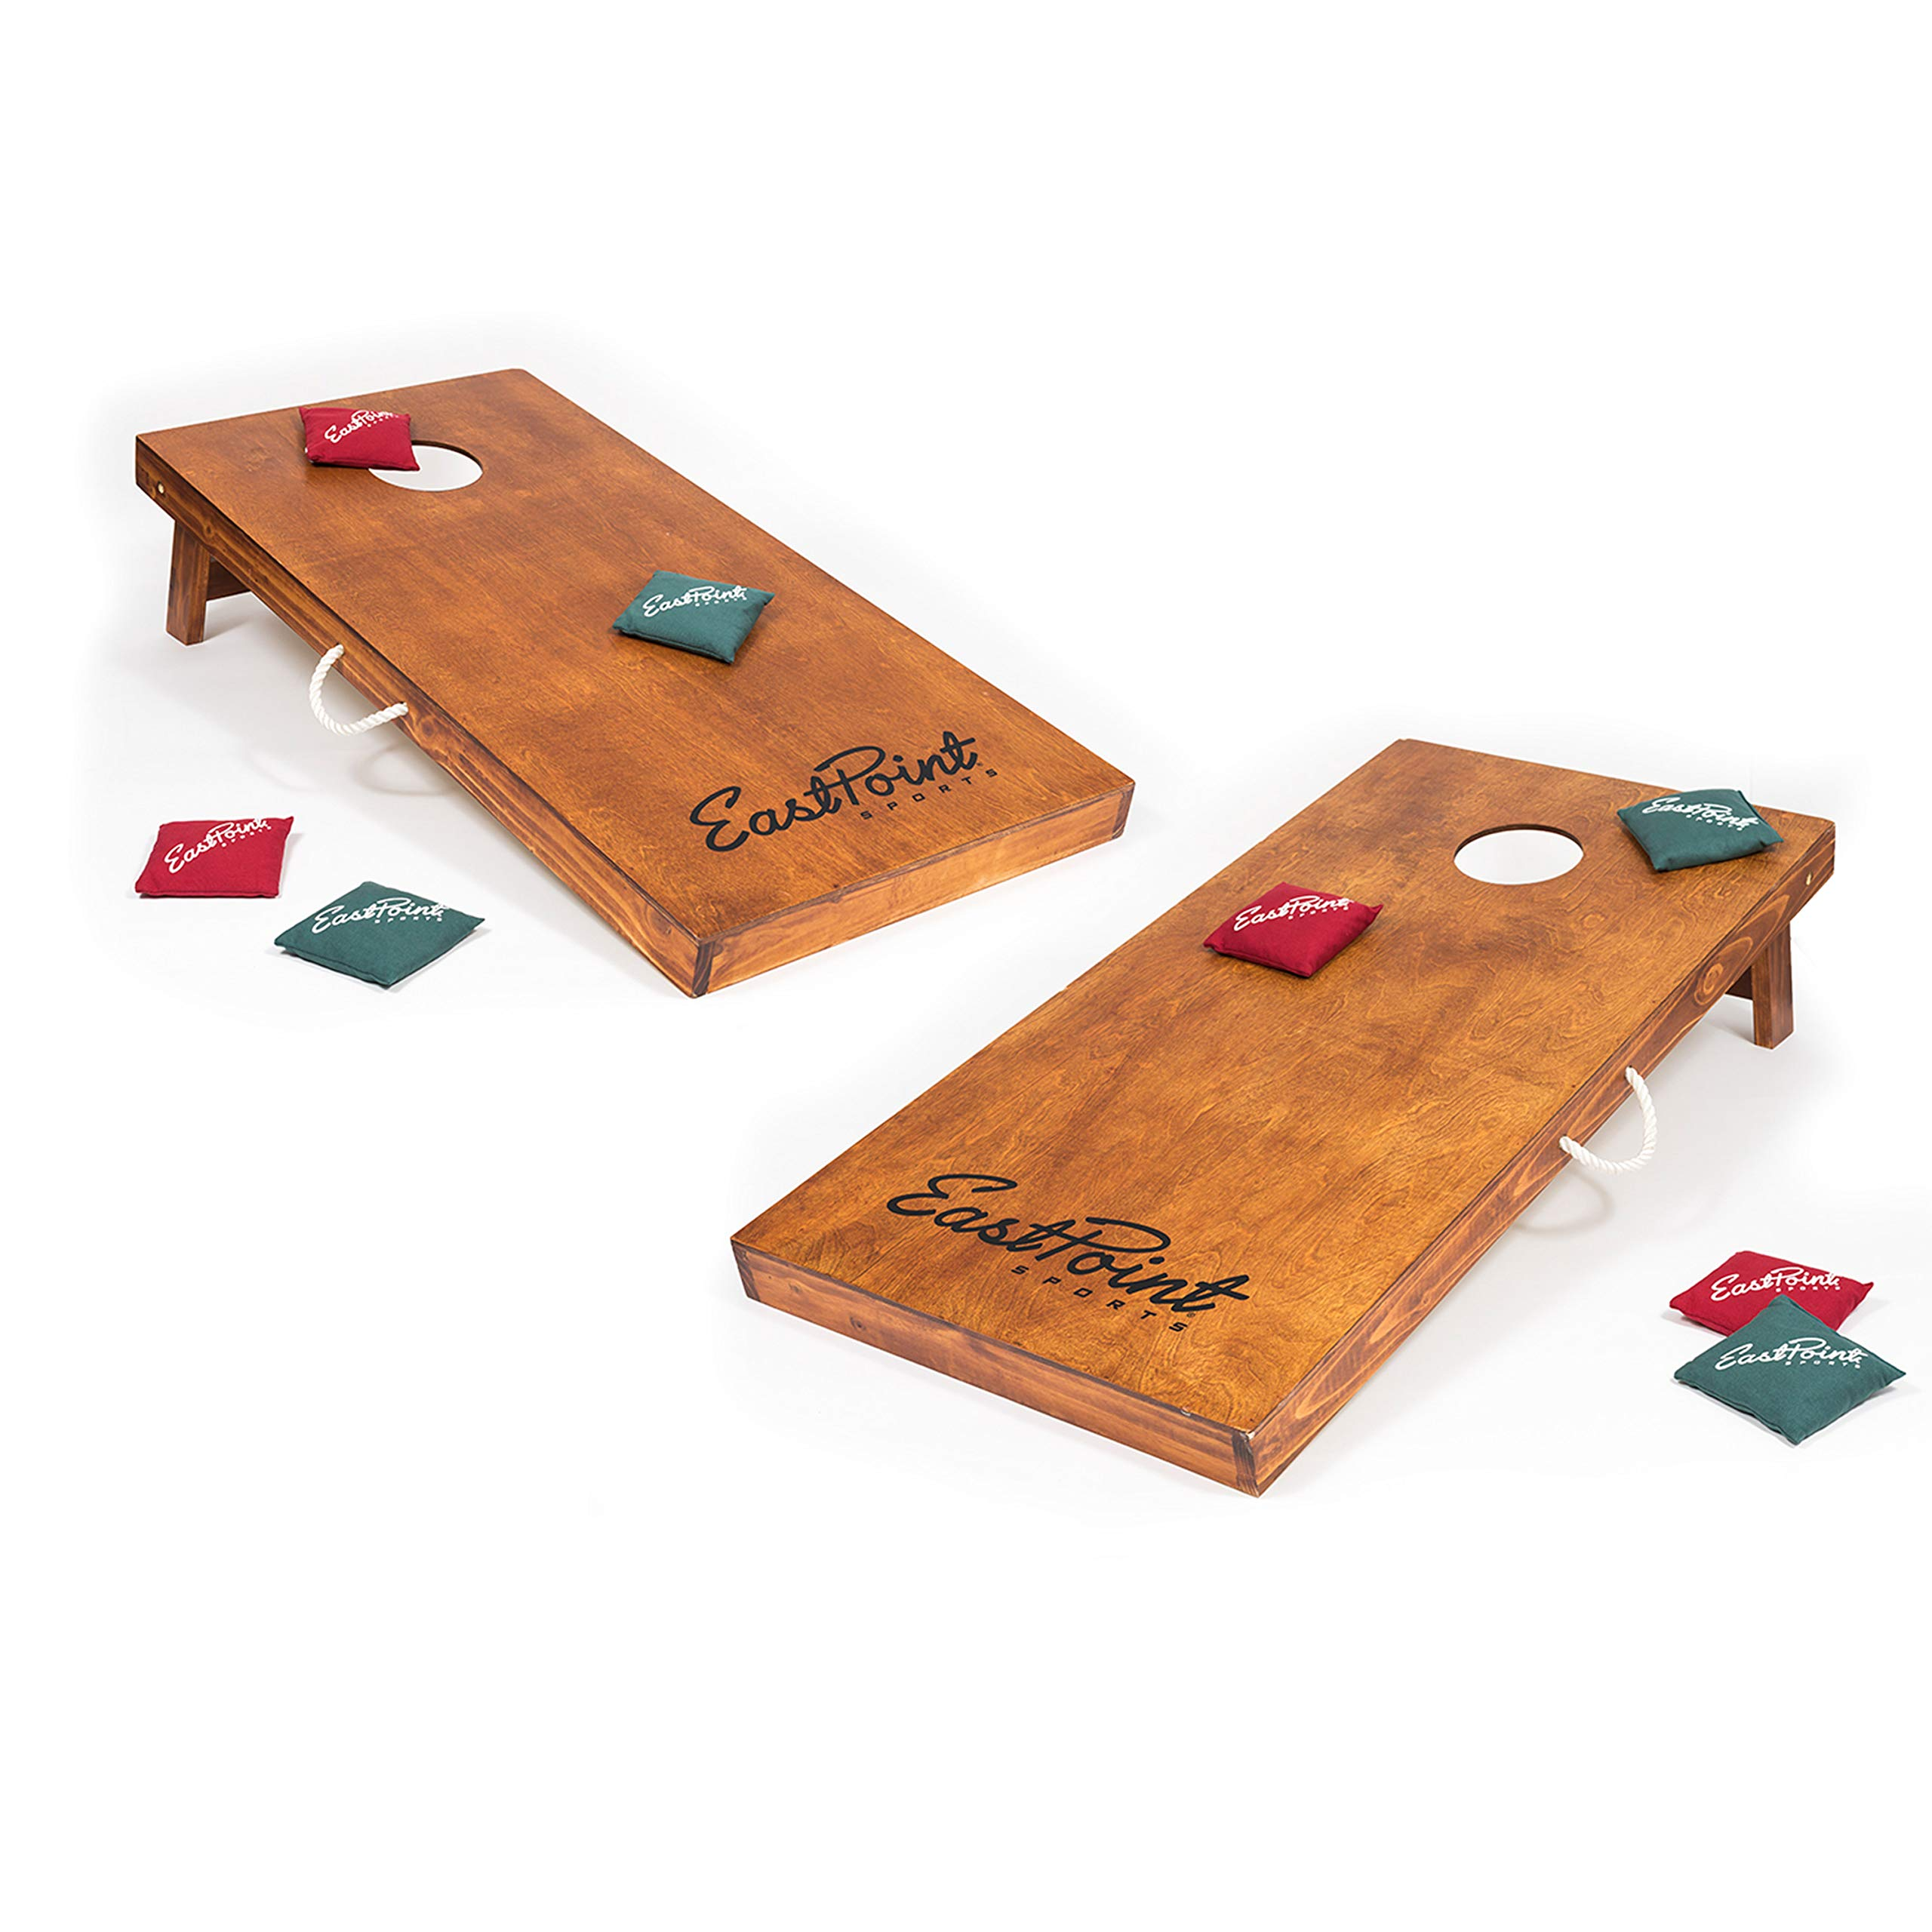 EastPoint Sports Full Size 4' x 2' Solid Wood Cornhole Game Set Bean Bag Toss - Features Storage Compartment, Carry Handle, and Return Ramp by EastPoint Sports